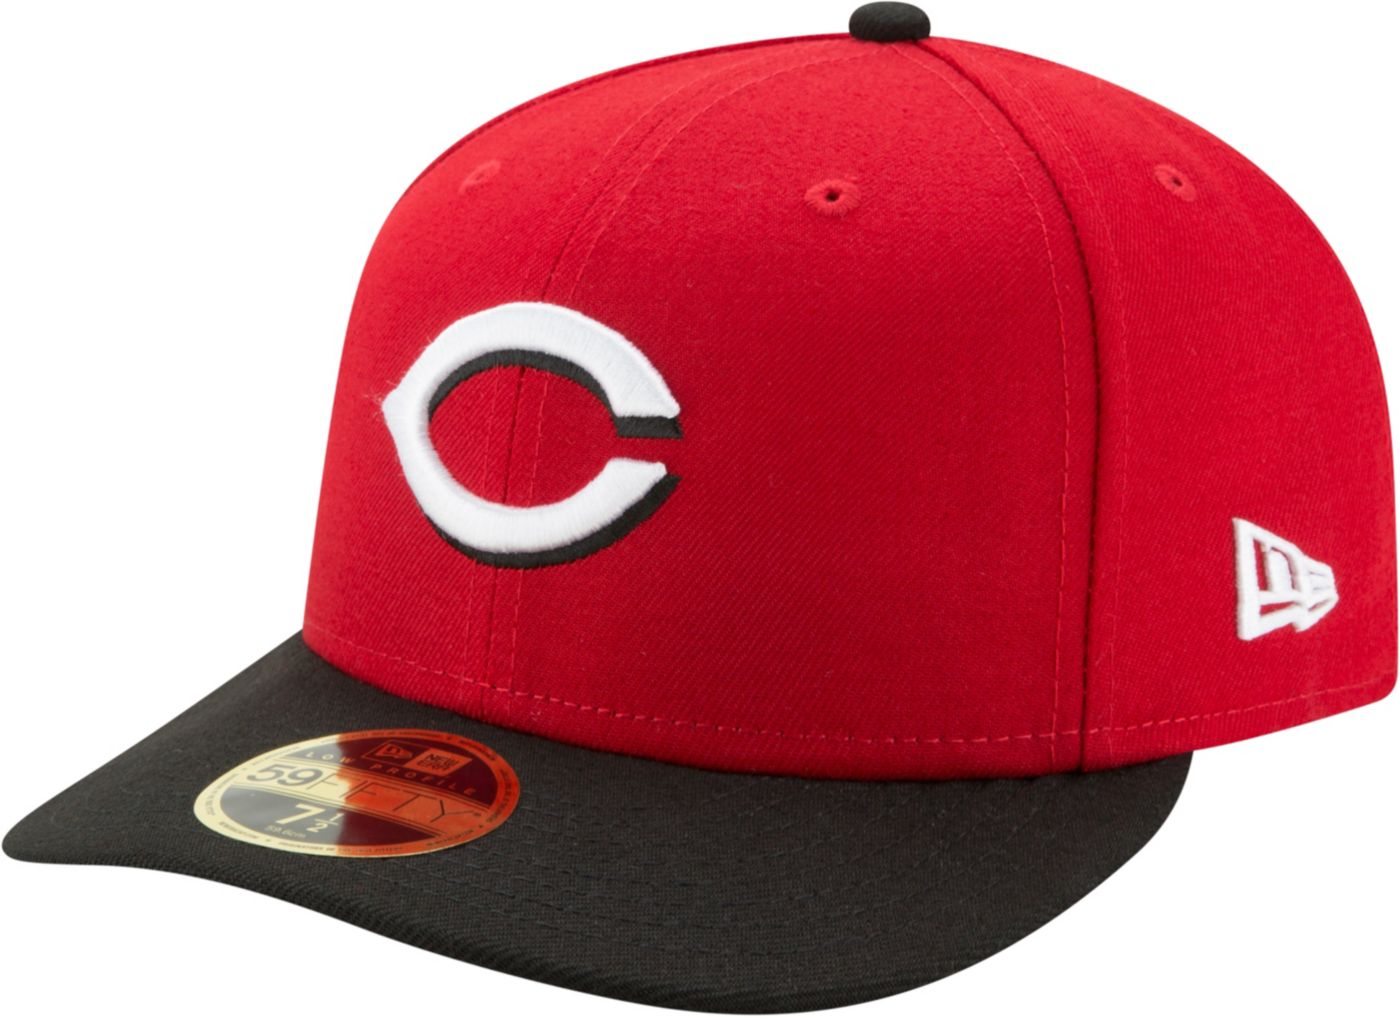 New Era Men's Cincinnati Reds 59Fifty Road Red Low Crown Fitted Hat